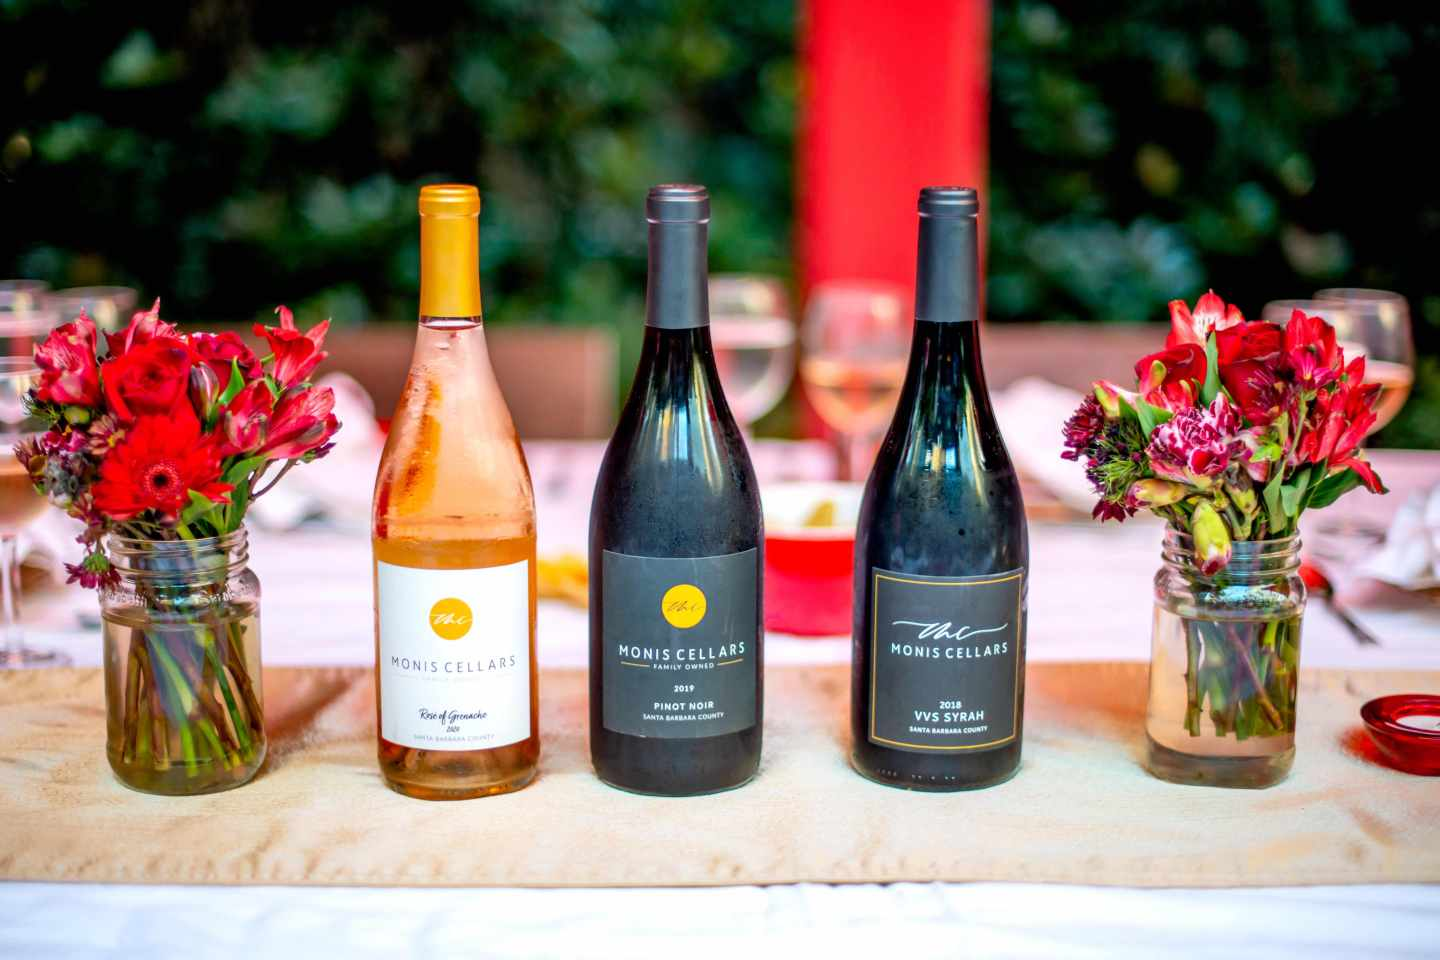 Monis Cellars - Rose, Pinot Not and Syrah. Fall Dinner Party Ideas.